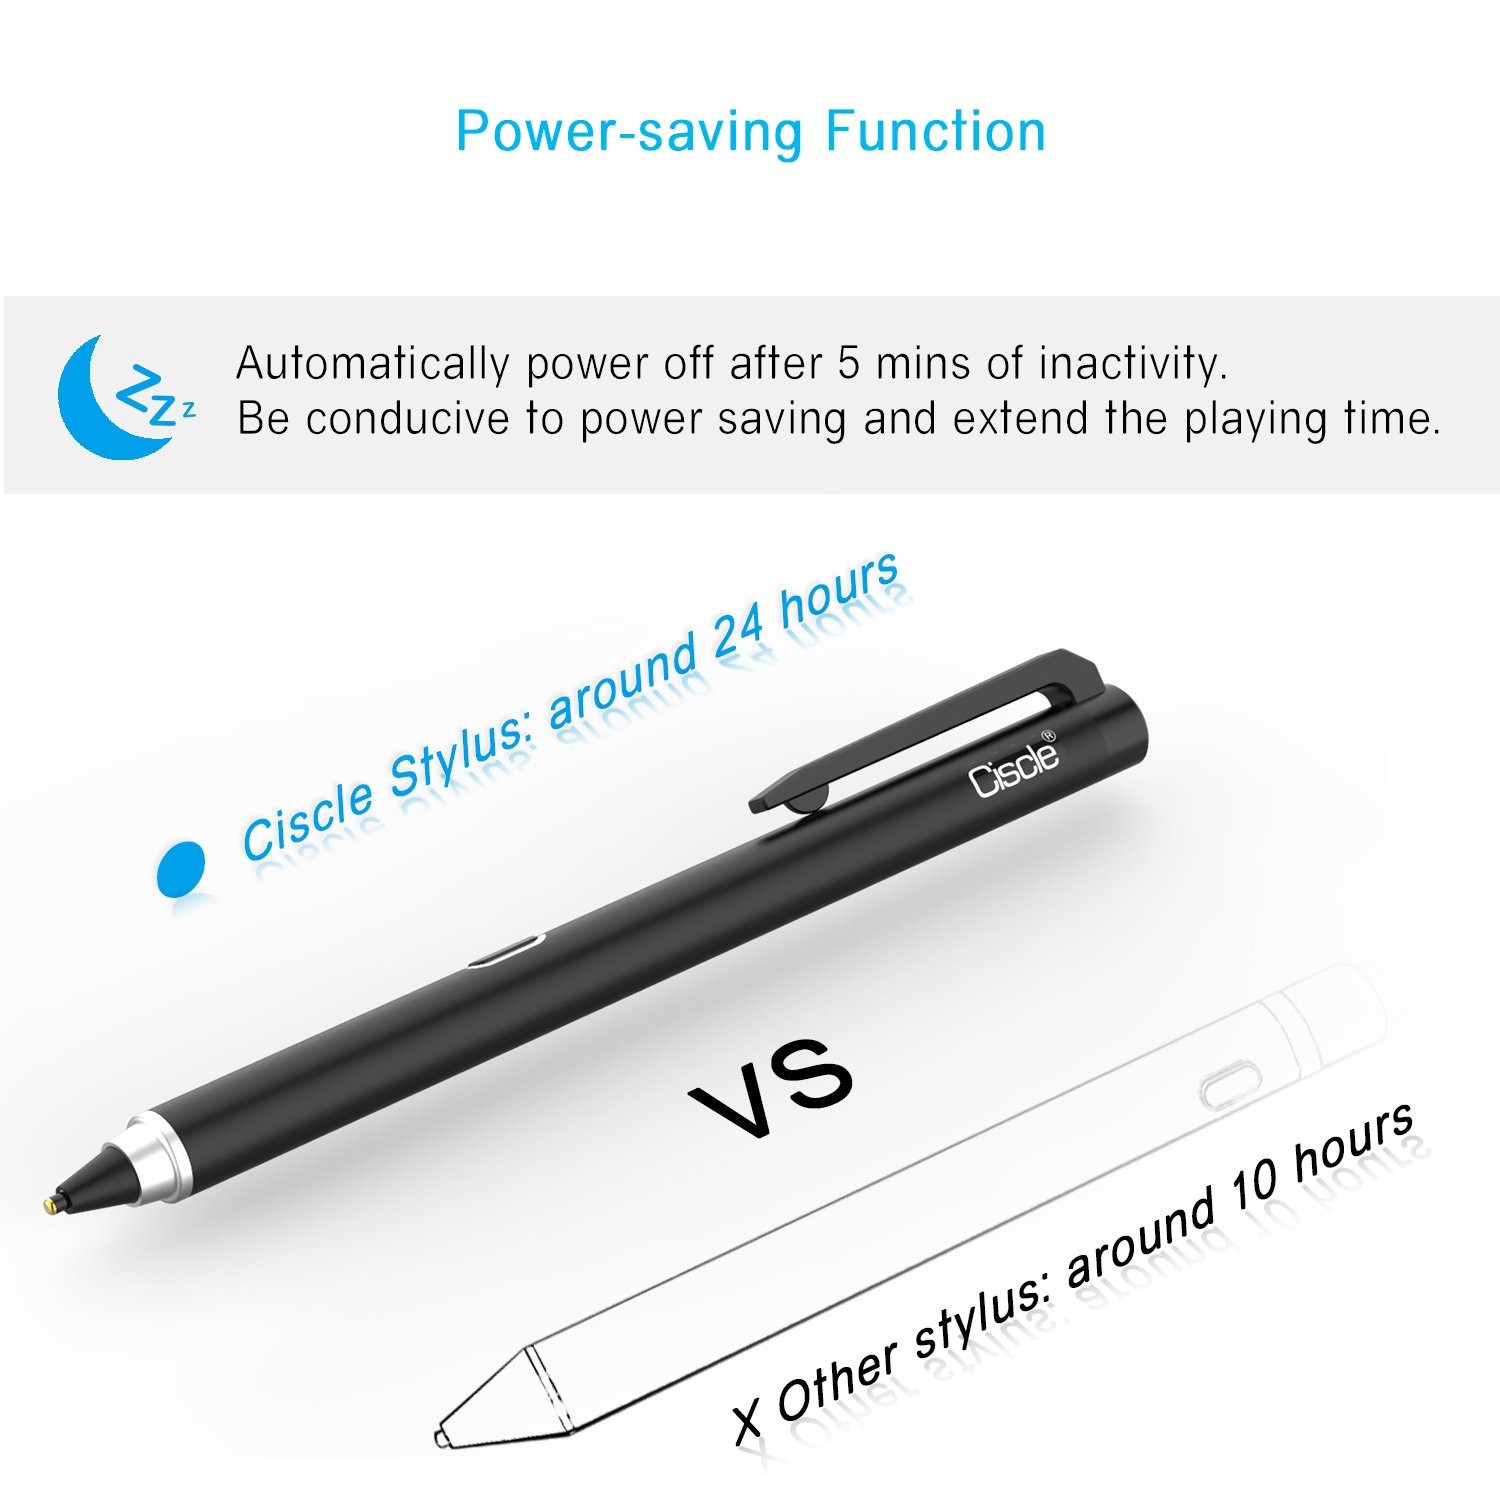 Active Stylus Pen, Ciscle Capacitive Digital Pen, 5 Mins Auto Power Off with High Precision Sensitivity 1.5mm Copper Tip, Fine Point Stylus for Touch Screen Devices, iPad/iPhone/Android Tablets-Black by Ciscle (Image #3)